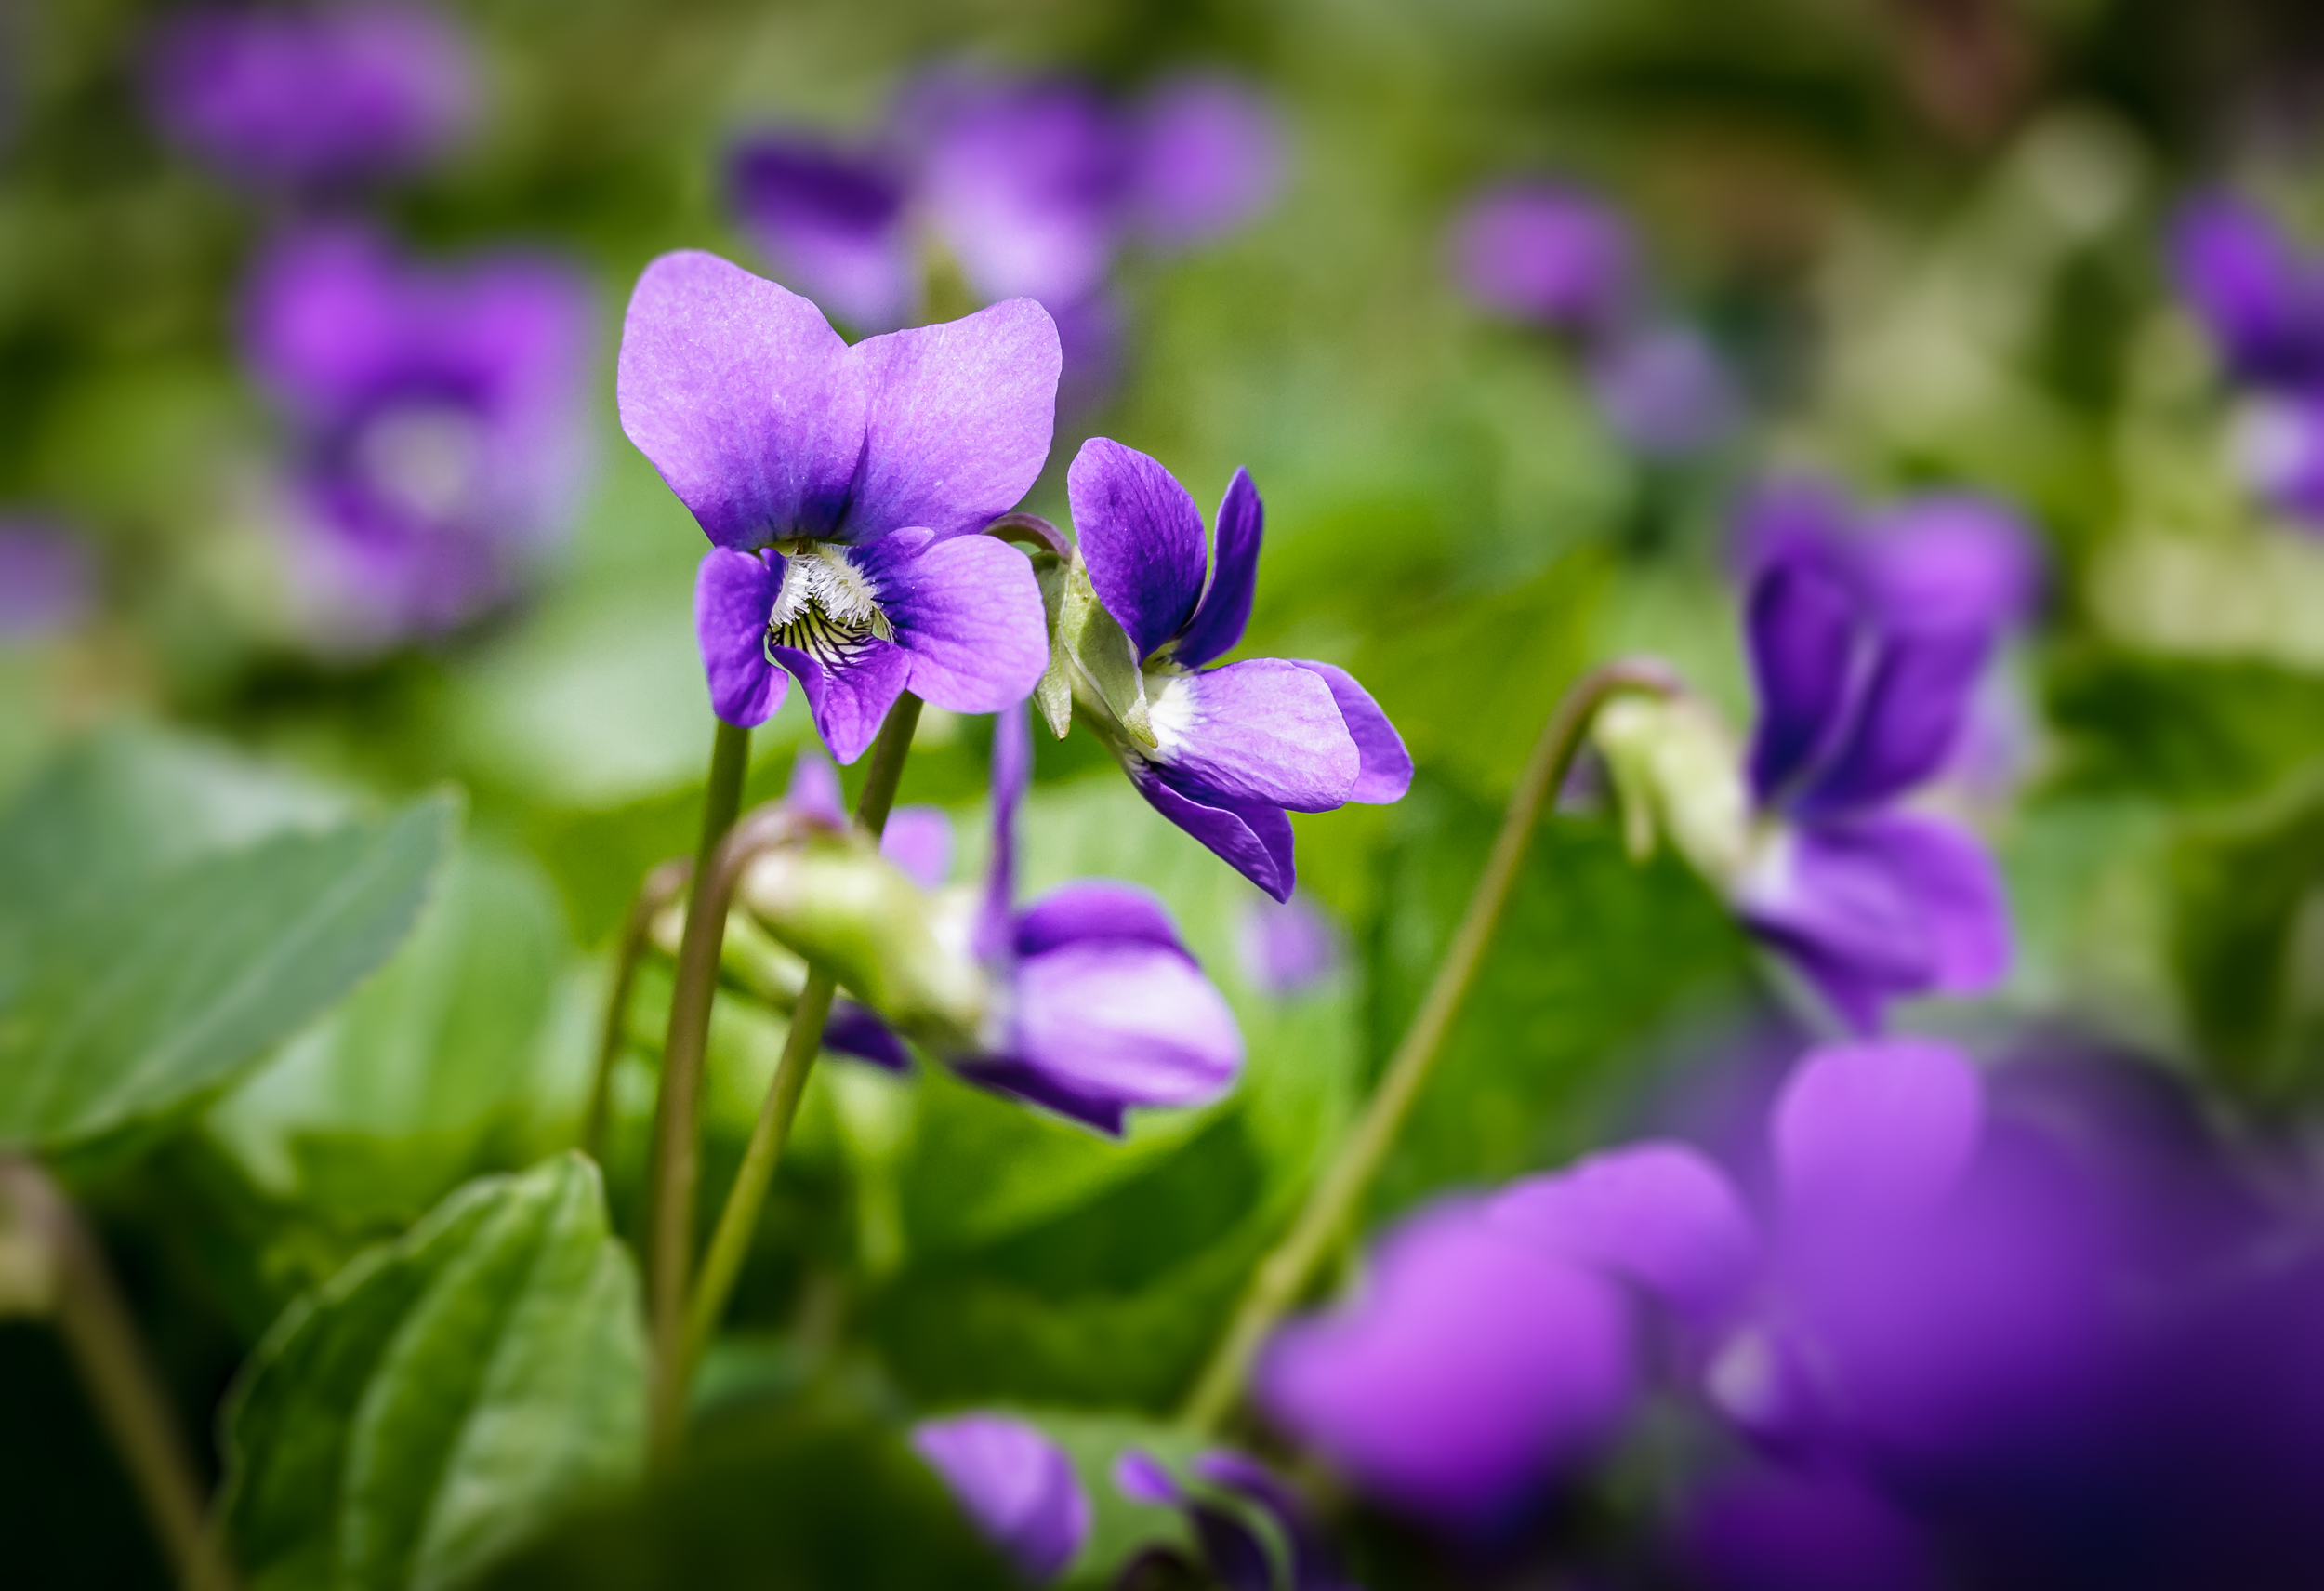 Violets in all their glory